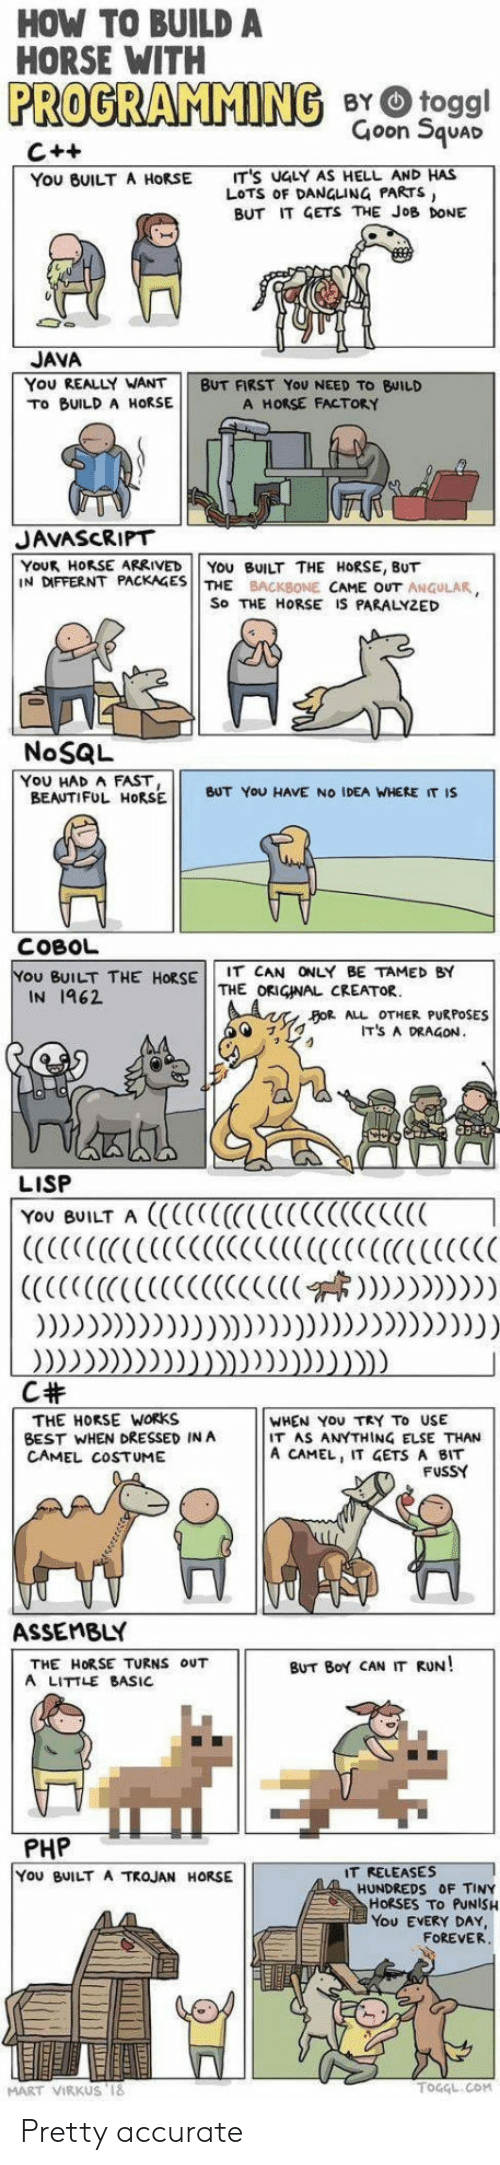 tamed: HOW TO BUILD A  HORSE WITH  PROGRAMMING  9  You BUILT A NORITS UCY AS HEL AND  TO BUILD A HoR  JAVASCRIPT  NKAS SE THELYZED  6  NoSQL  BEAUTIFUL E BUT You HAVE No IDEA WHERE IT IS  YoU BUILT THE HORSE IT CAN ONLY BE TAMED BY  YOu BUILT A ((CCCCCCCCCCCCC  c#  ASSEMBLY  PHP  5  3 Pretty accurate